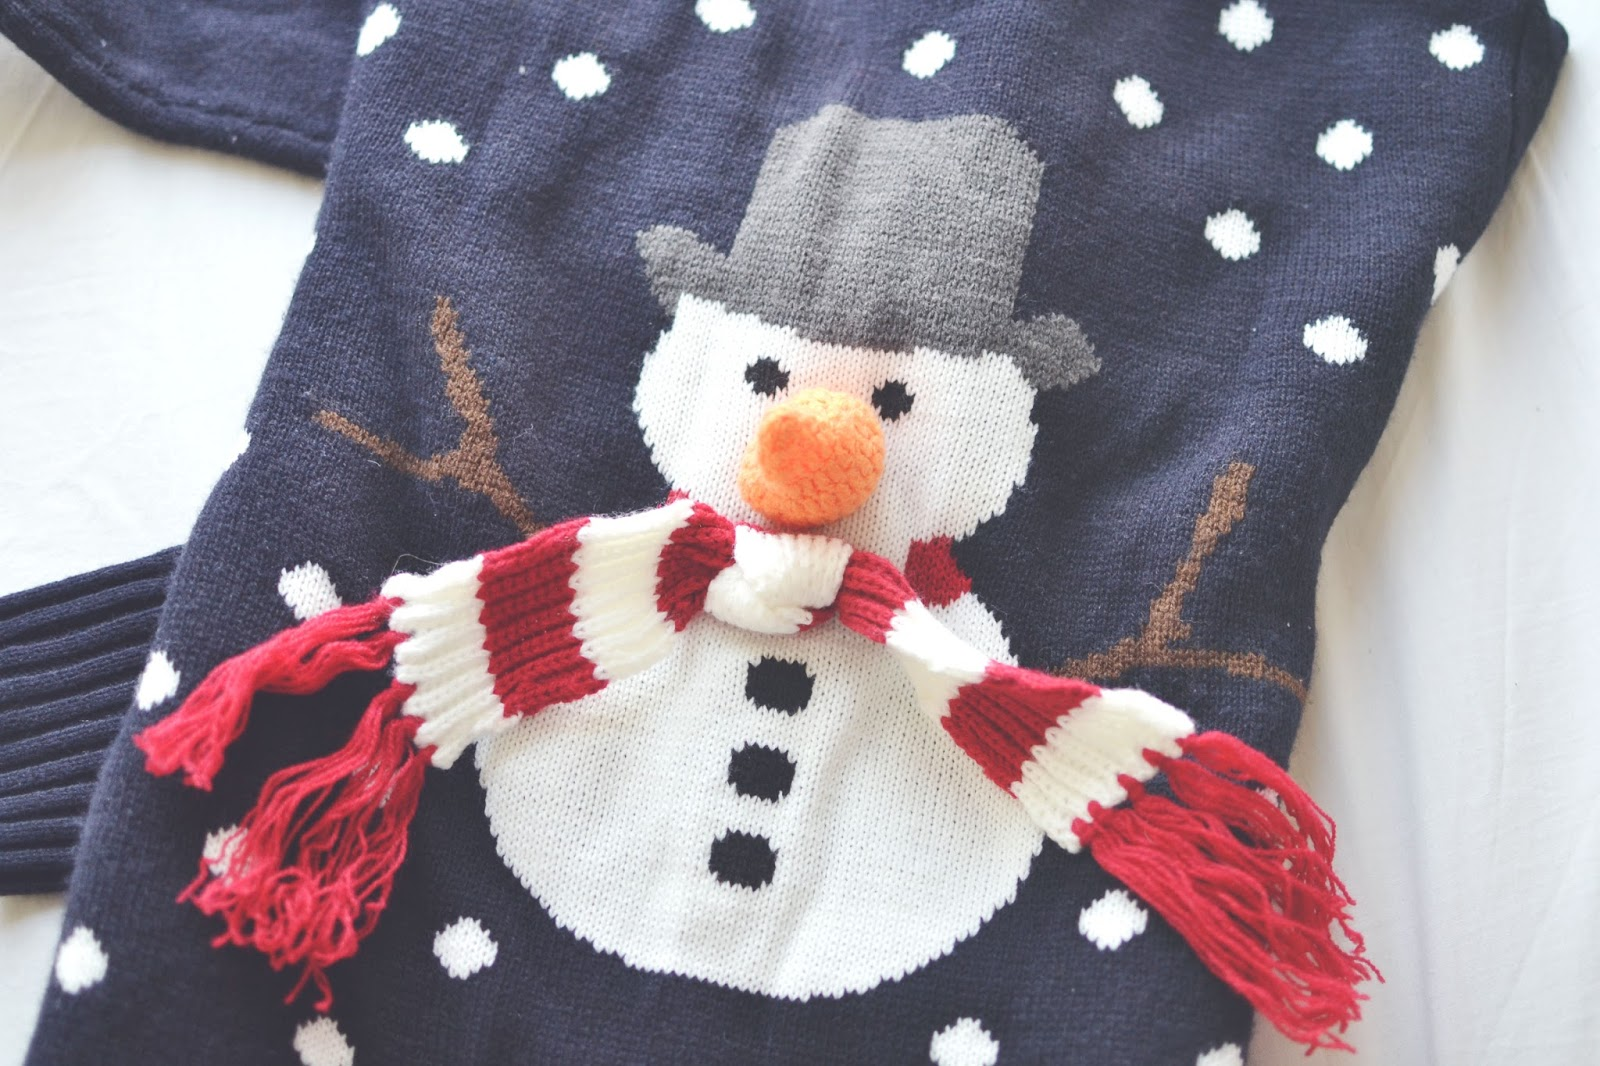 primark snowman jumper, christmas jumper from Primark, primark christmas jumpers